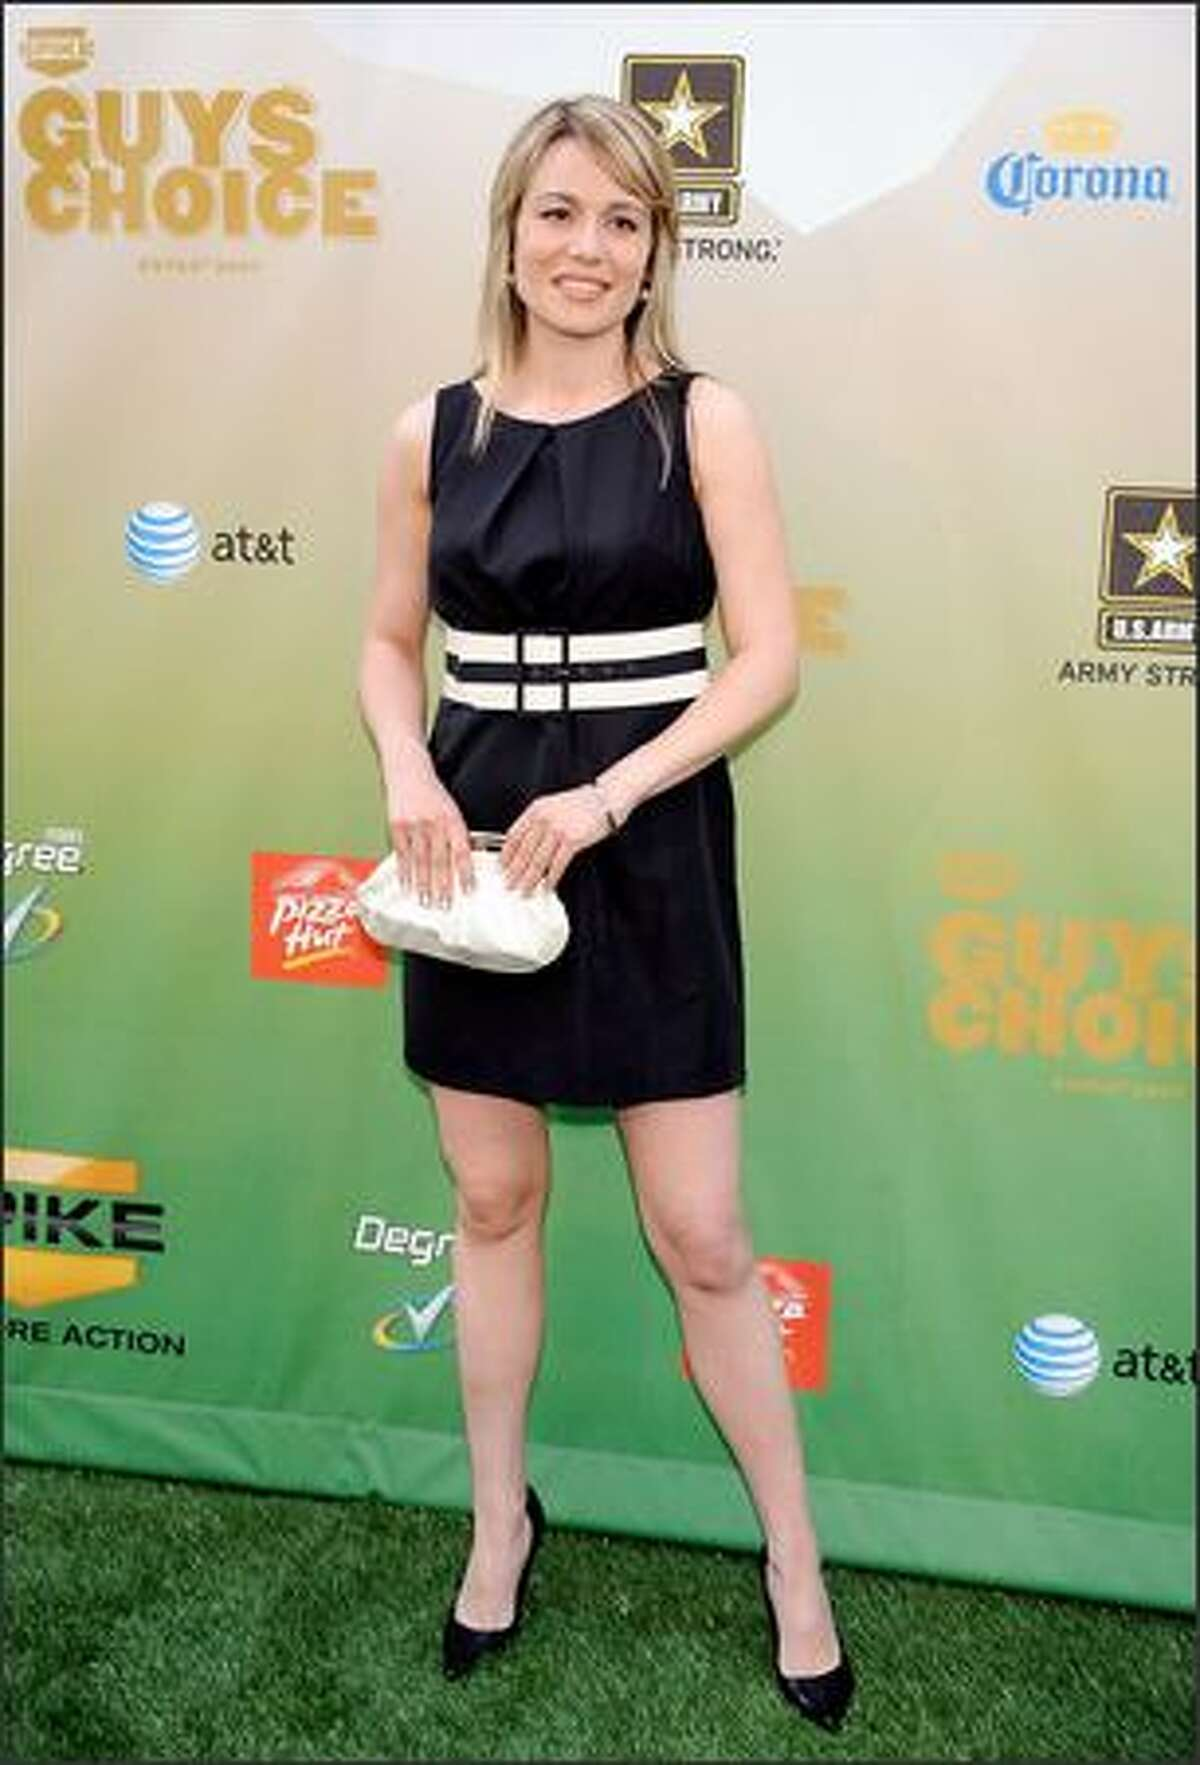 """Table tennis player Biba Golic arrives at Spike TV's 2009 """"Guys Choice Awards"""" held at the Sony Studios in Los Angeles on Saturday, May 30, 2009."""